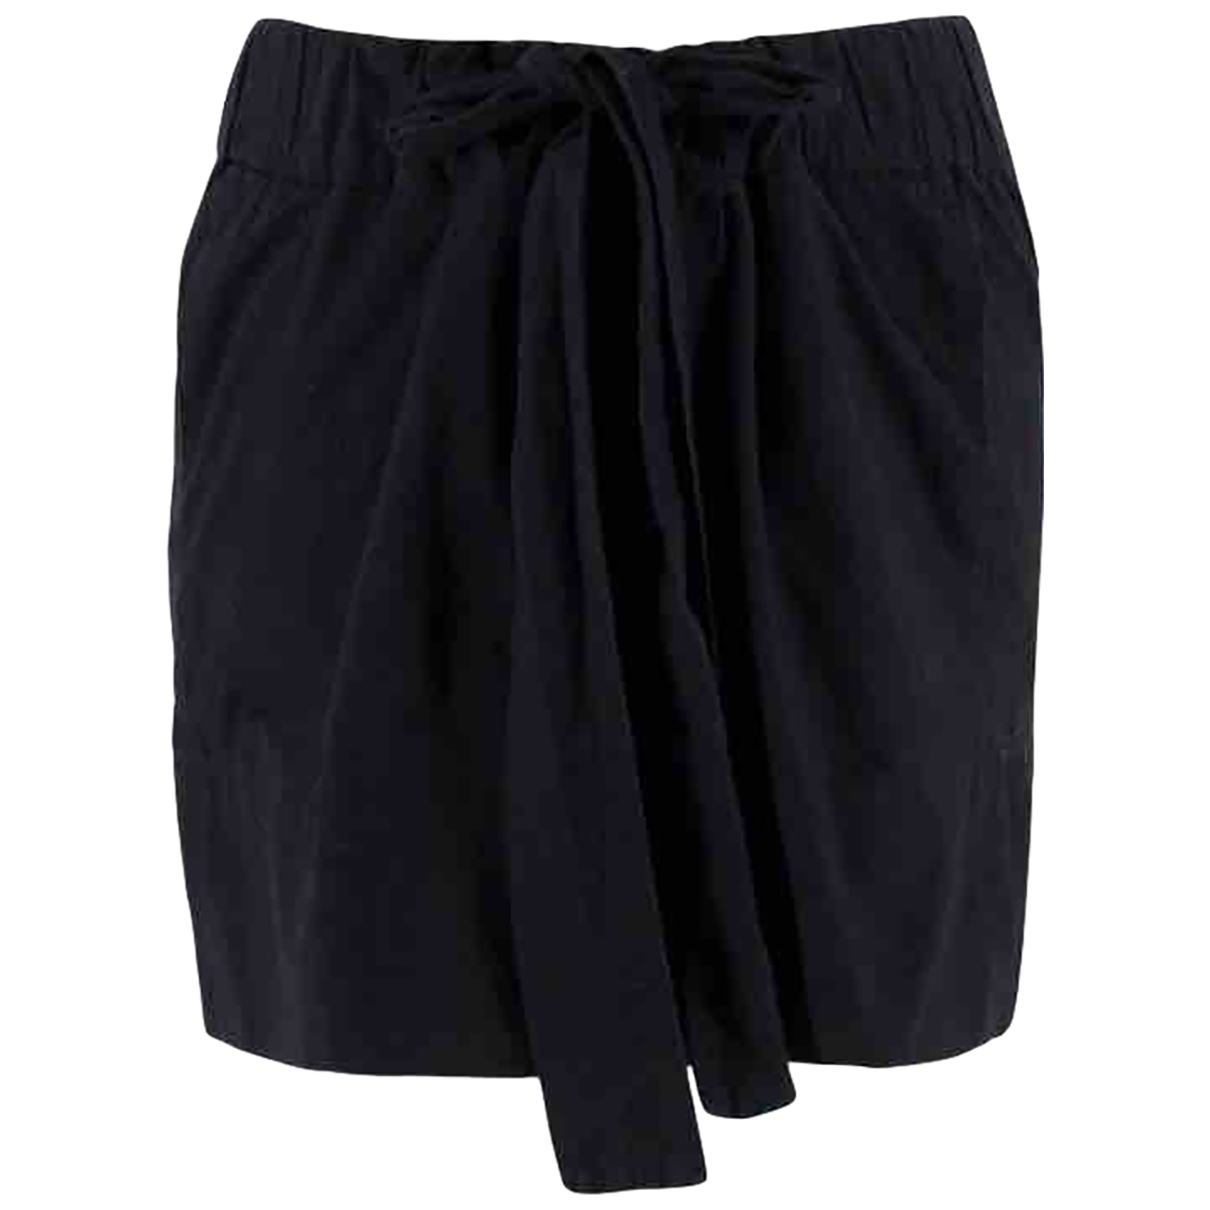 Isabel Marant Etoile \N Black Cotton skirt for Women 38 FR